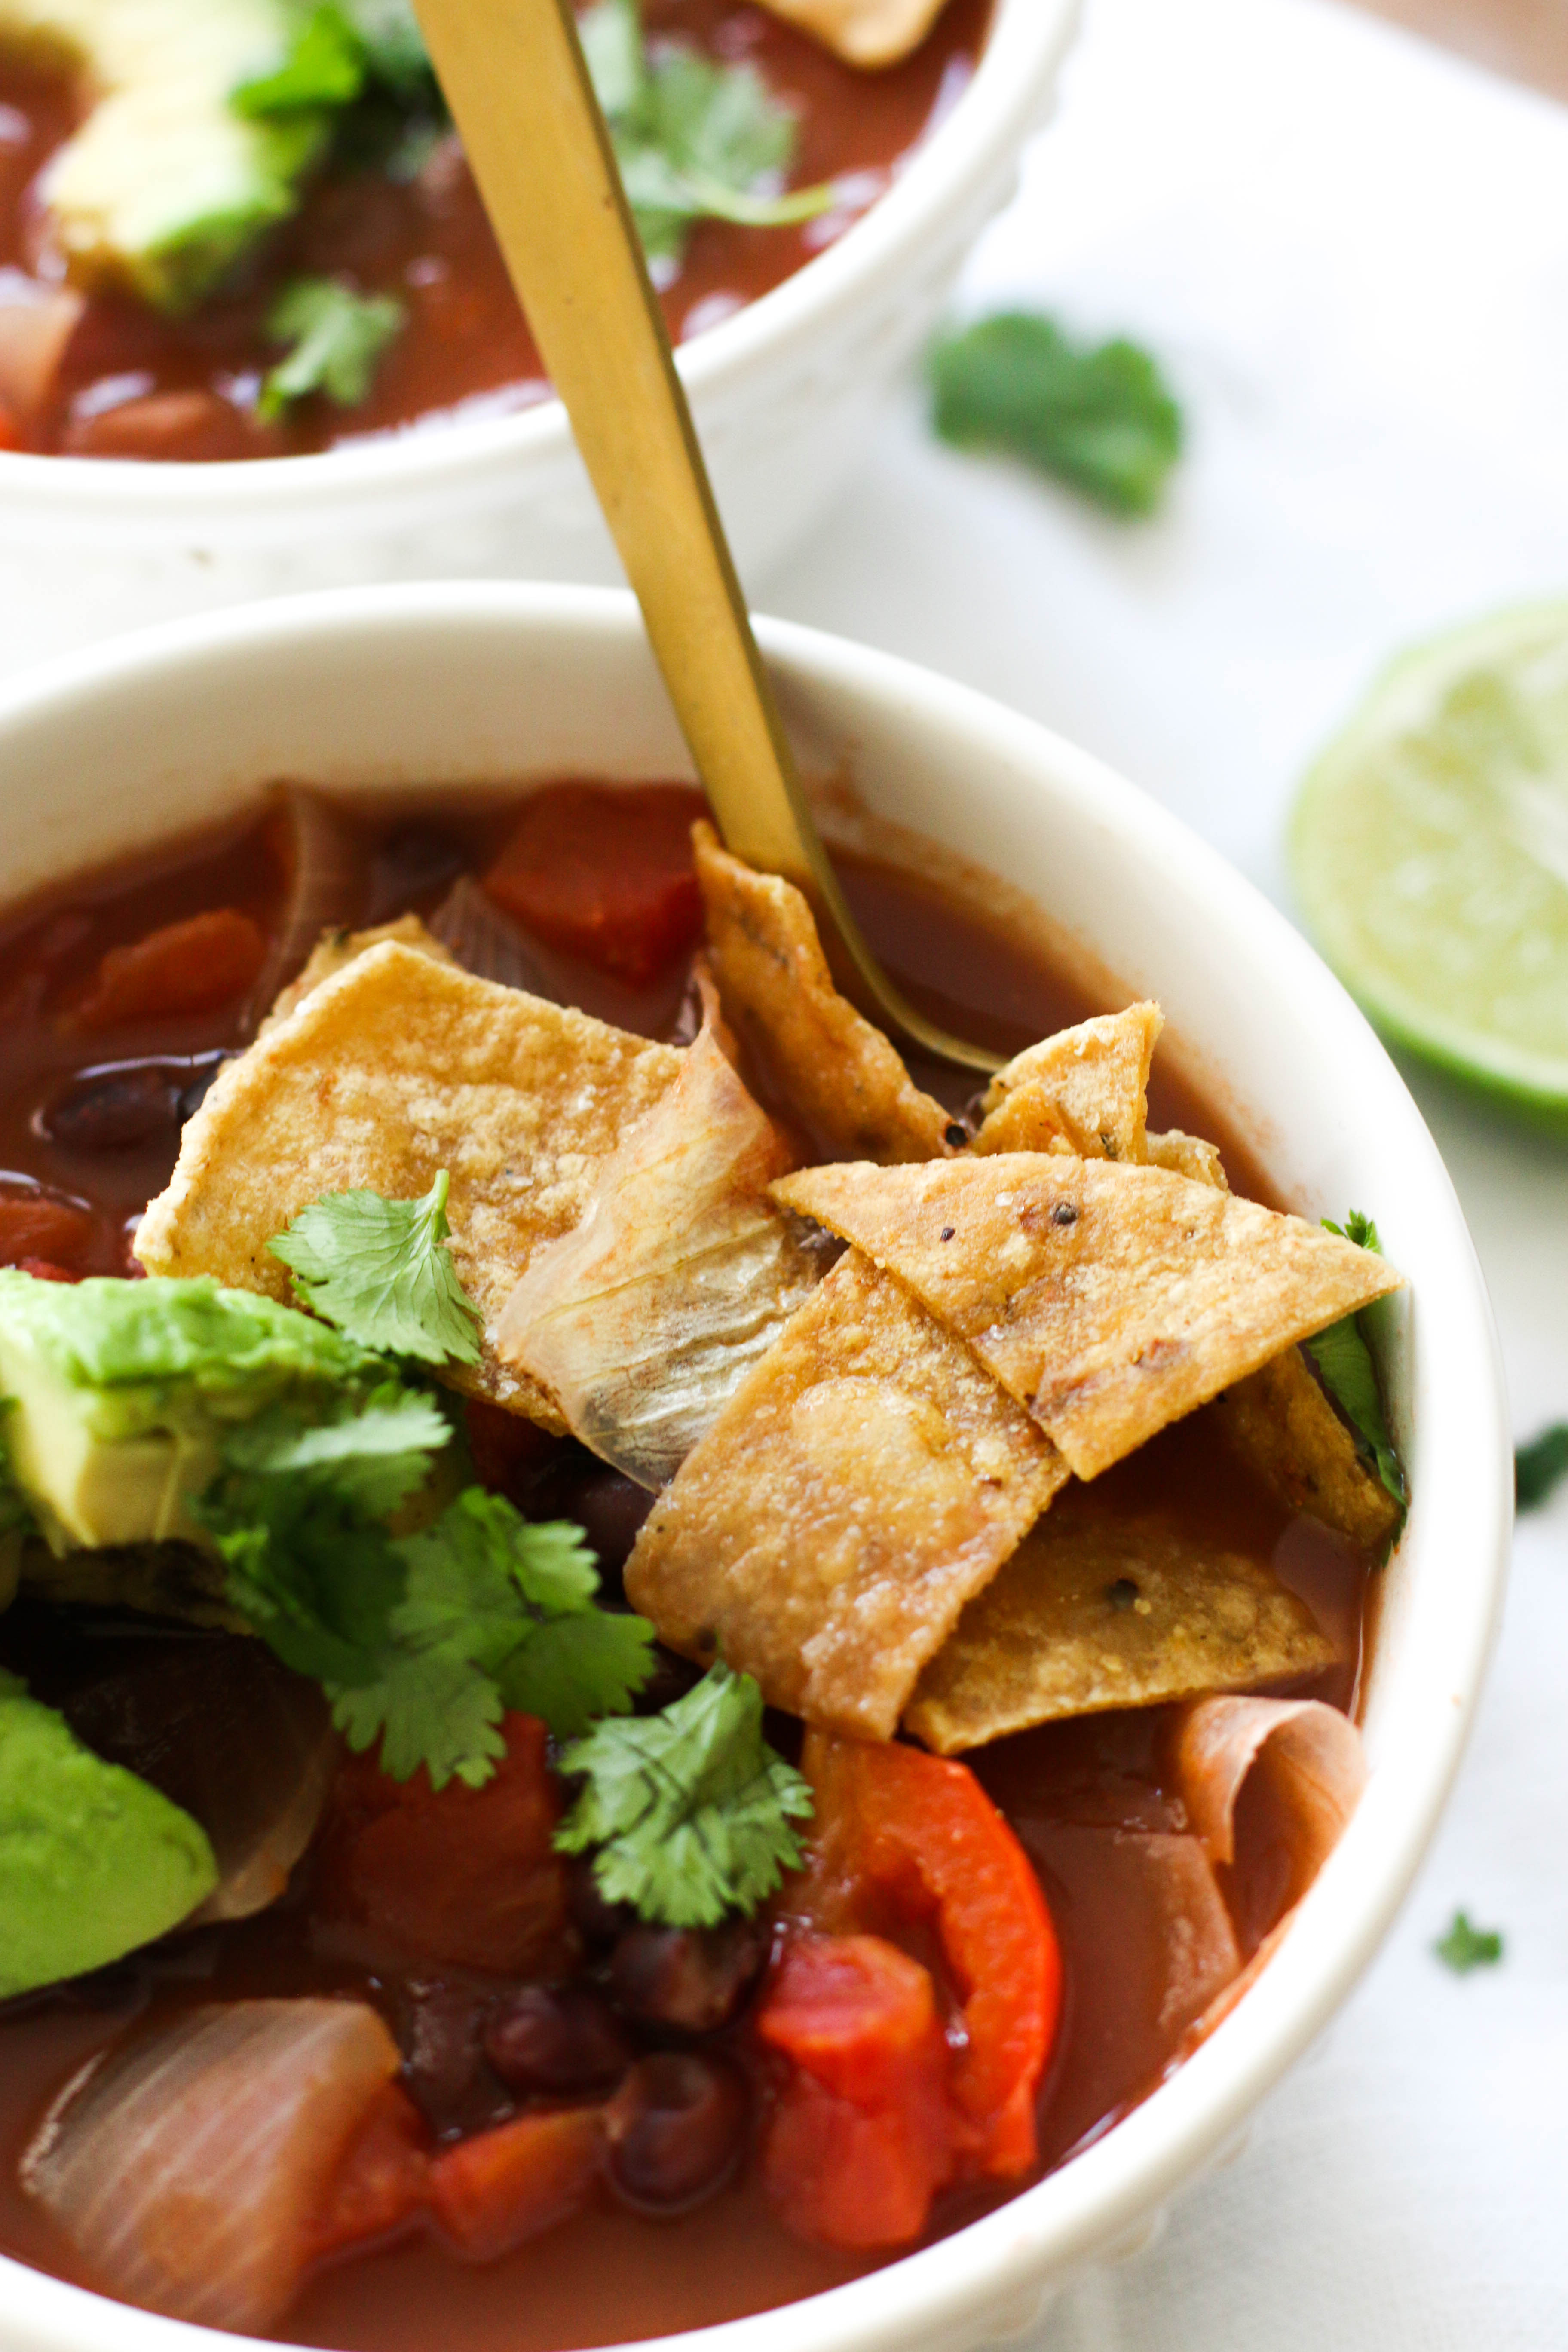 This black bean tortilla soup is vegan, gluten free, and filled with protein! It's ready in under an hour and pairs well with homemade tortilla chips, making it the perfect quick meal.